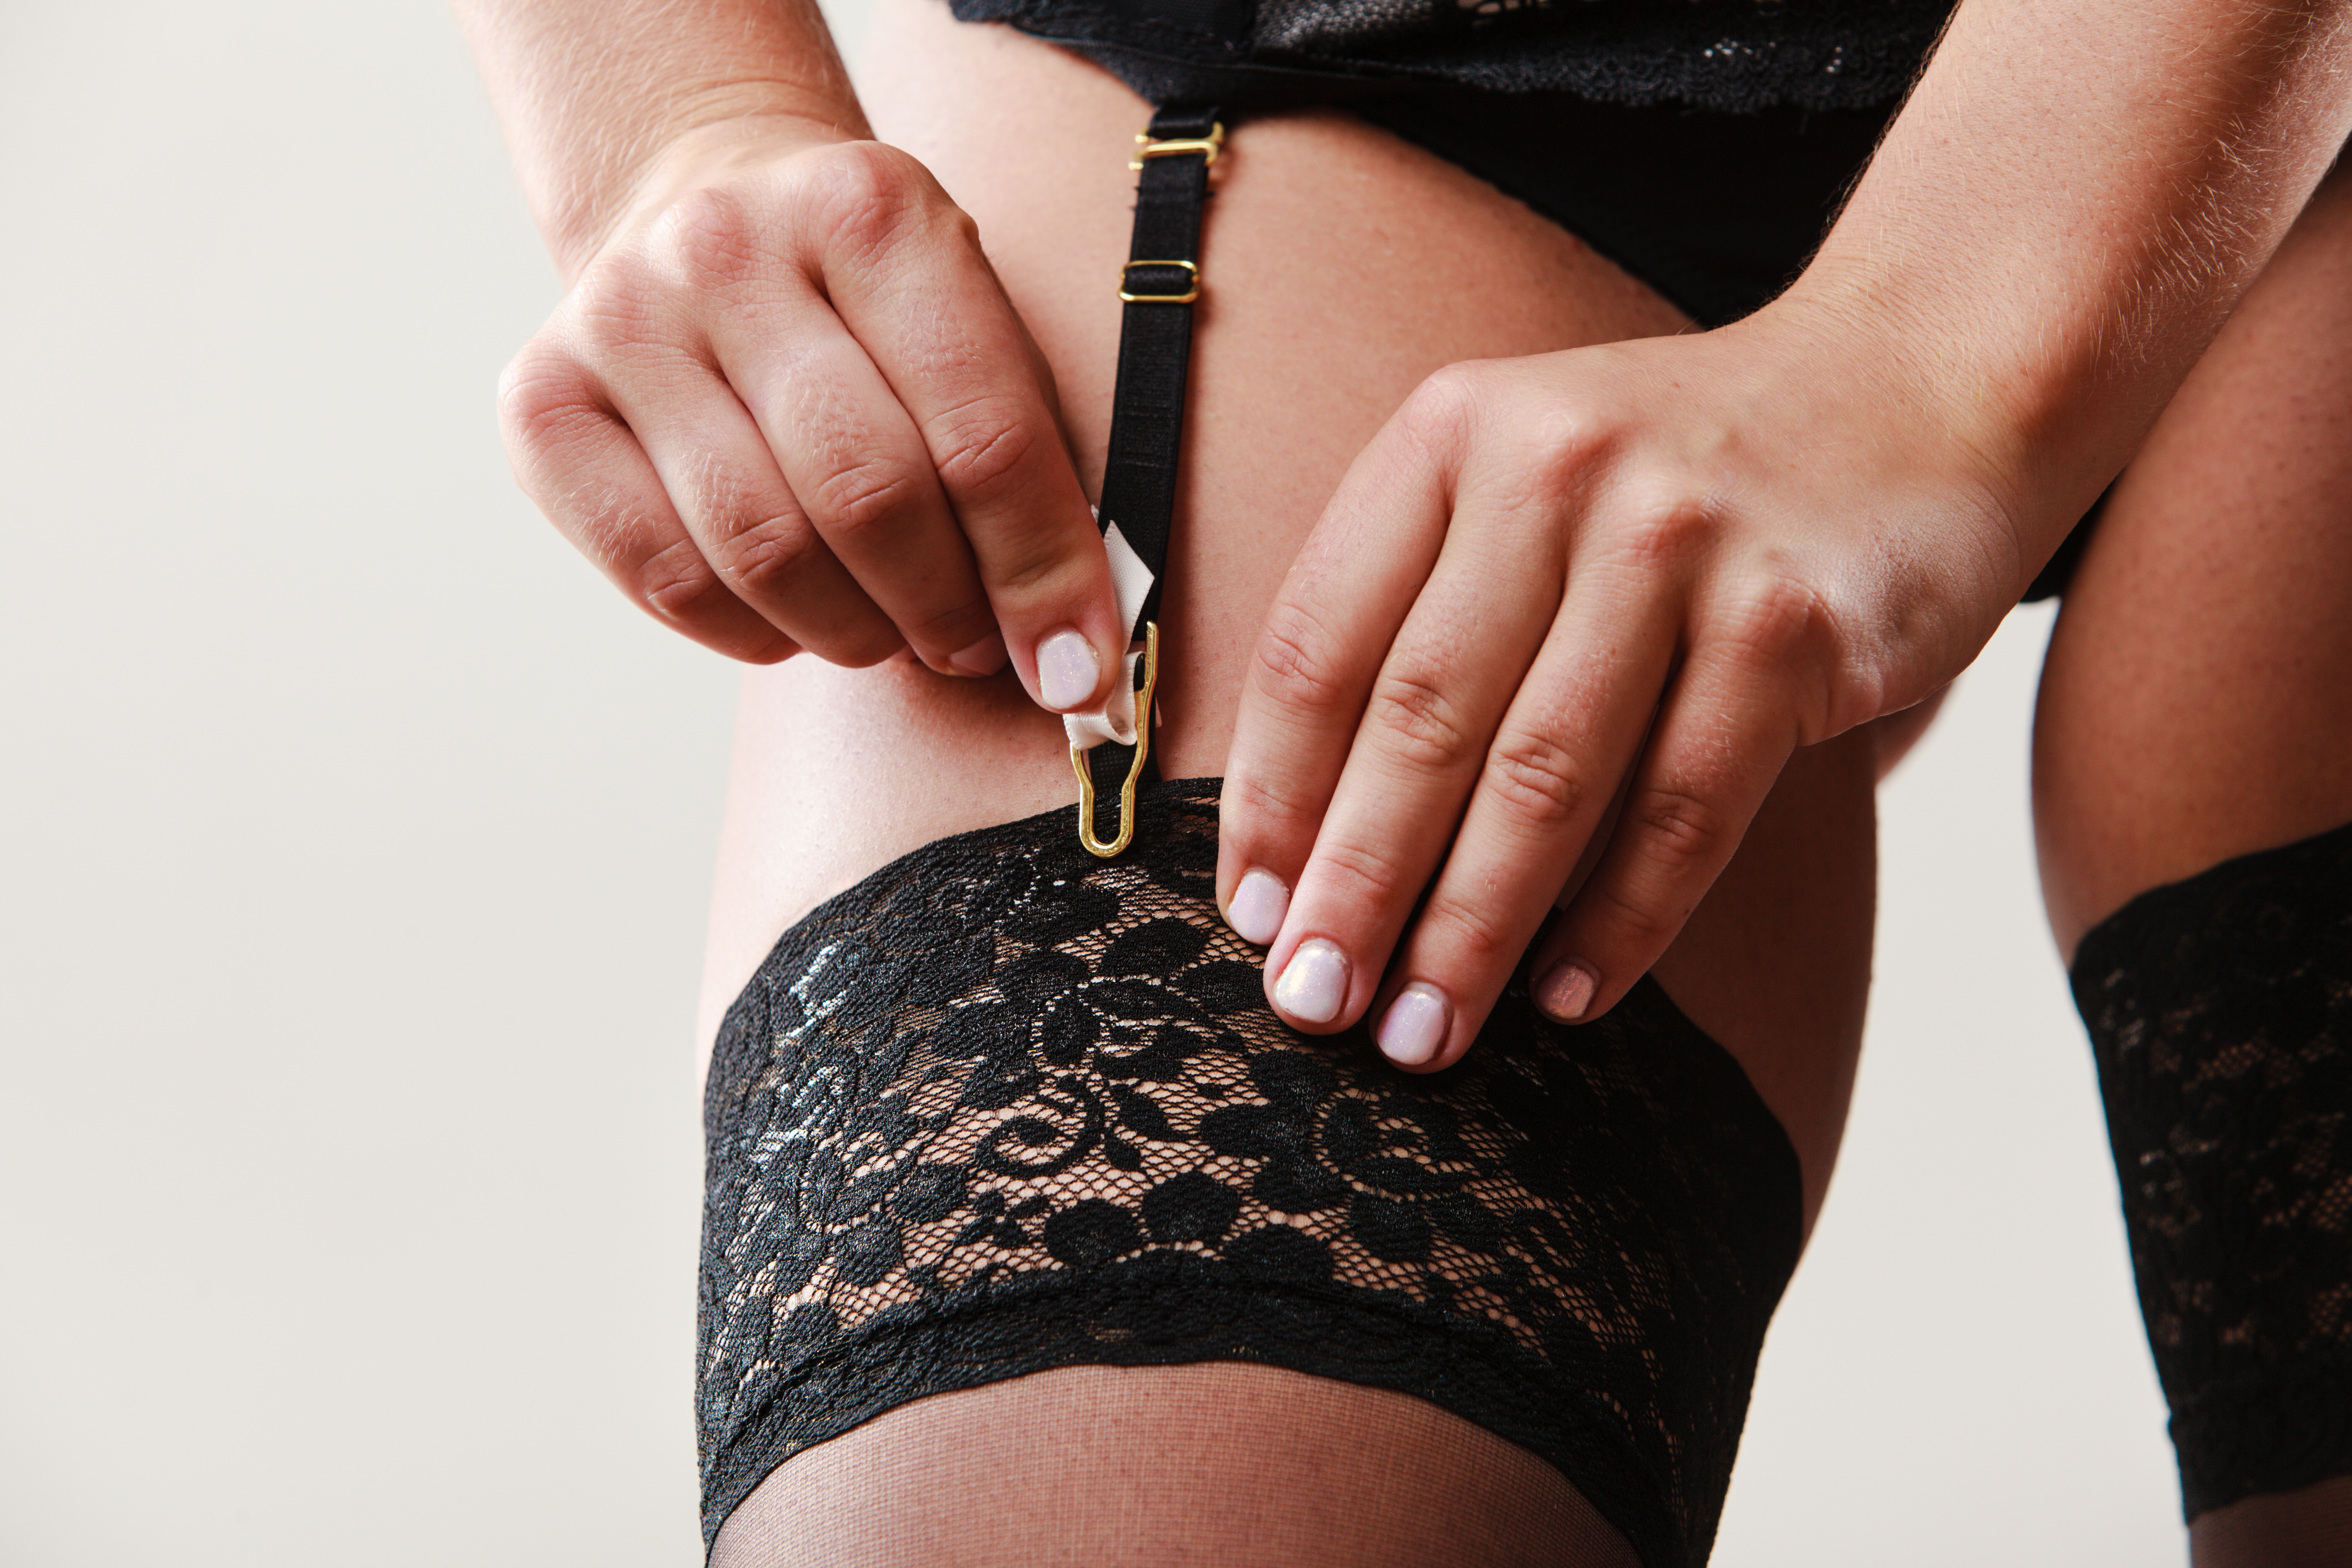 edc48ab6f2a How to Attach Thigh Highs to a Garter Belt | LEAFtv